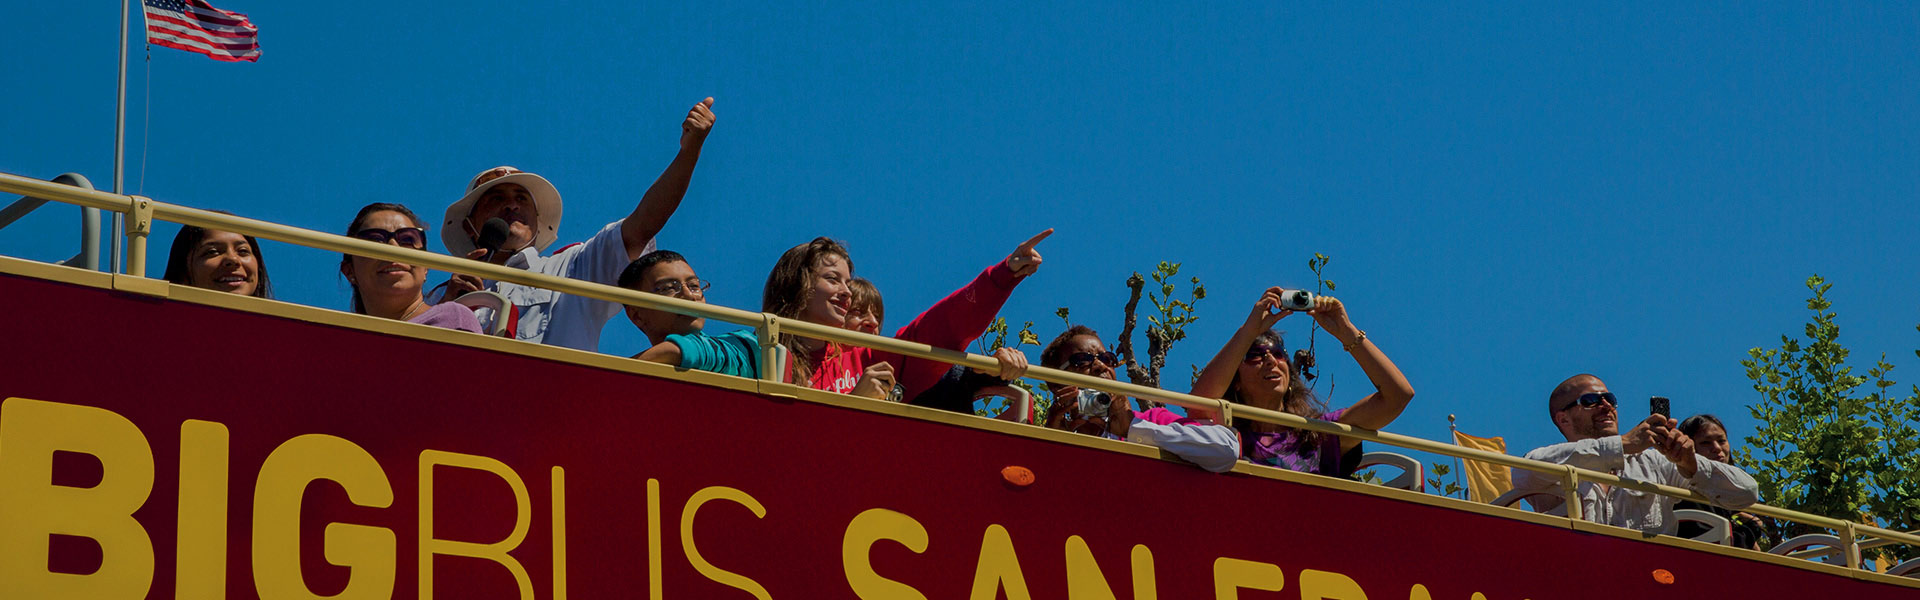 Open-top sightseeing Big Bus in San Francisco